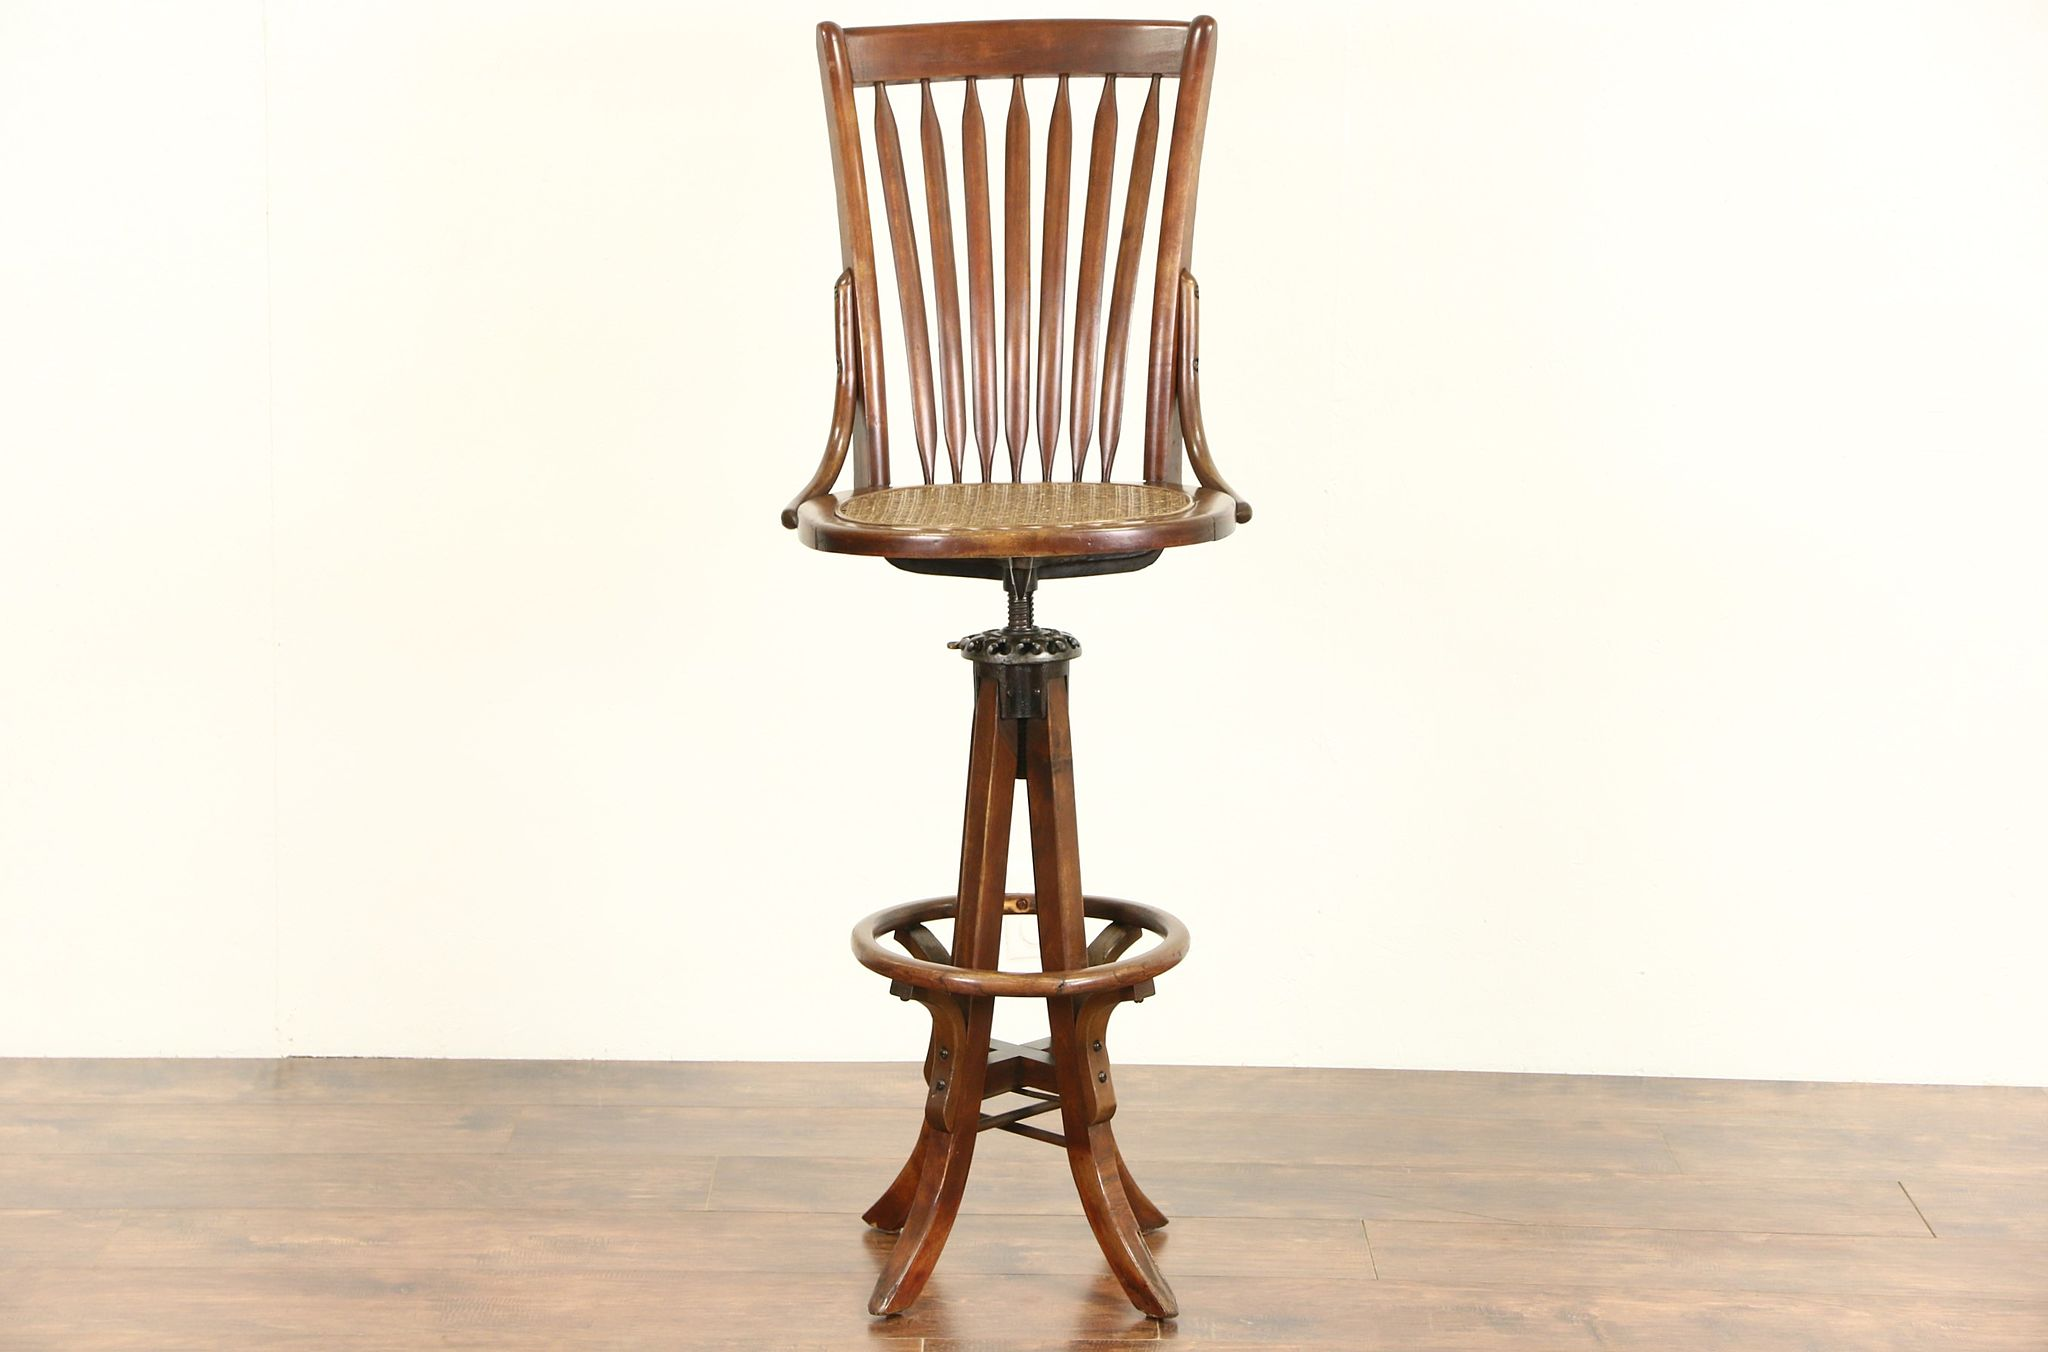 Terrific Drafting Architect Or Artist Antique Swivel Stool With Back Milwaukee Pat 1914 Caraccident5 Cool Chair Designs And Ideas Caraccident5Info